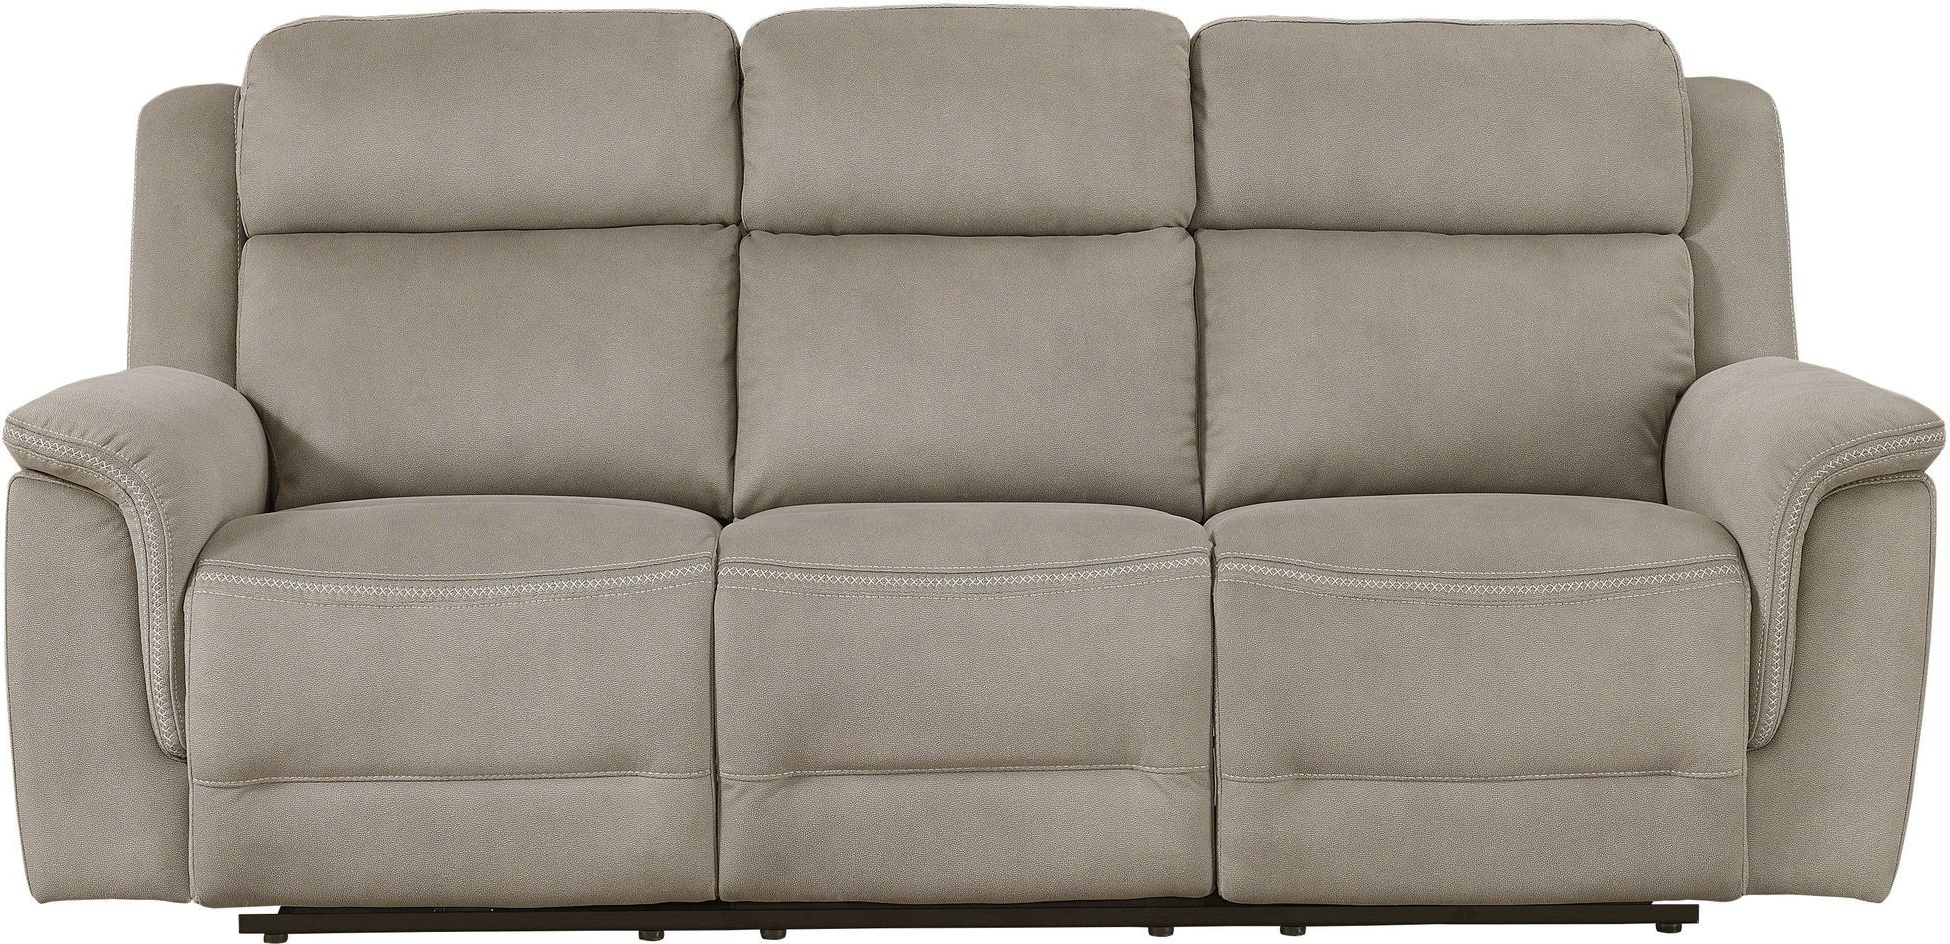 Power Reclining Sofas With Popular Prime Resources Noah Collection Power Reclining Sofa With (View 6 of 20)